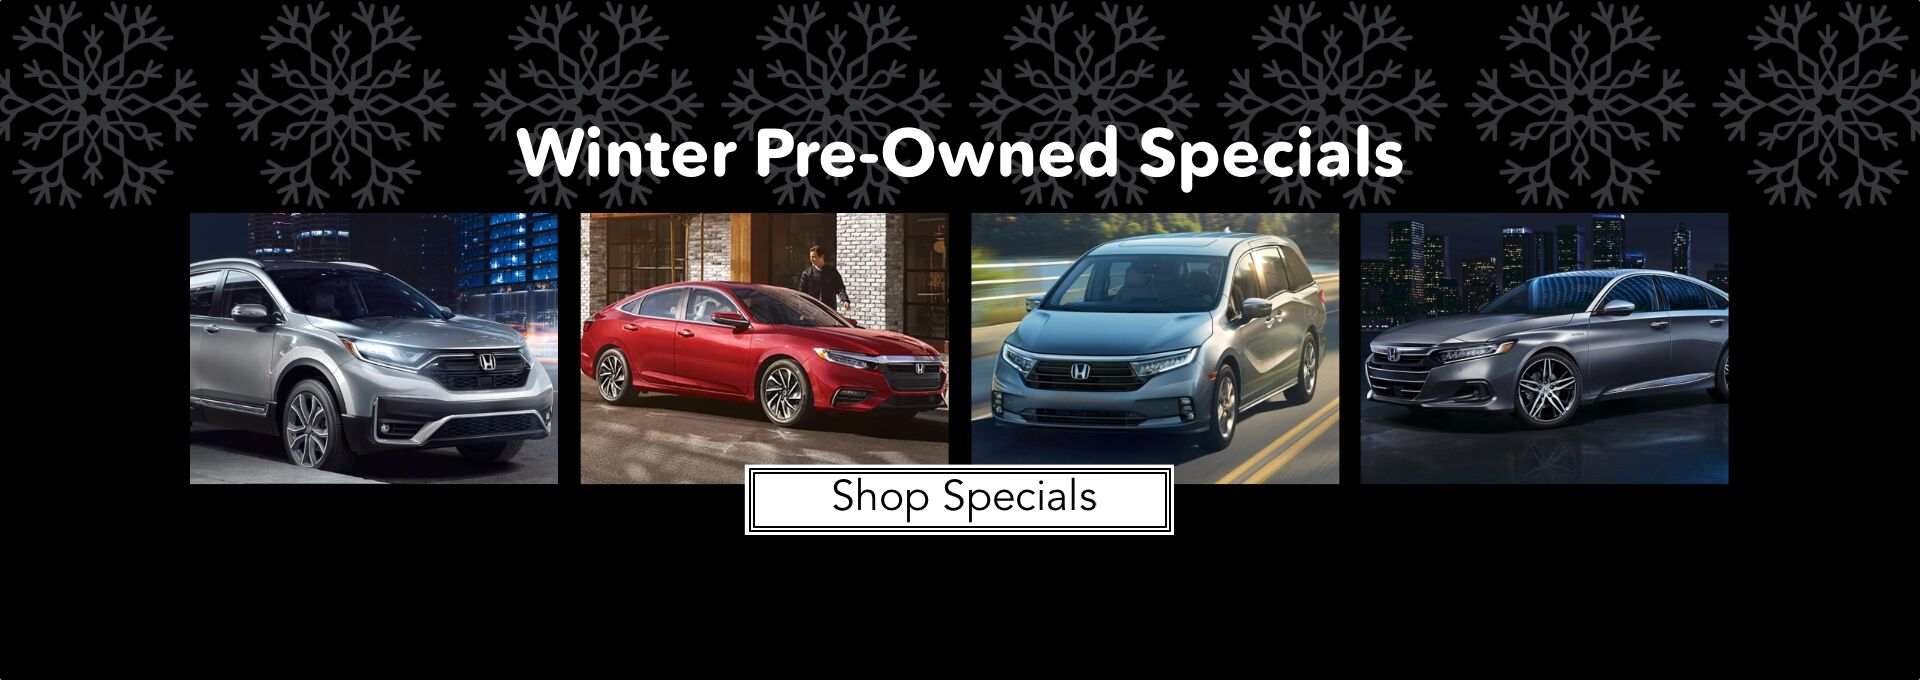 Winter Pre-Owned Specials